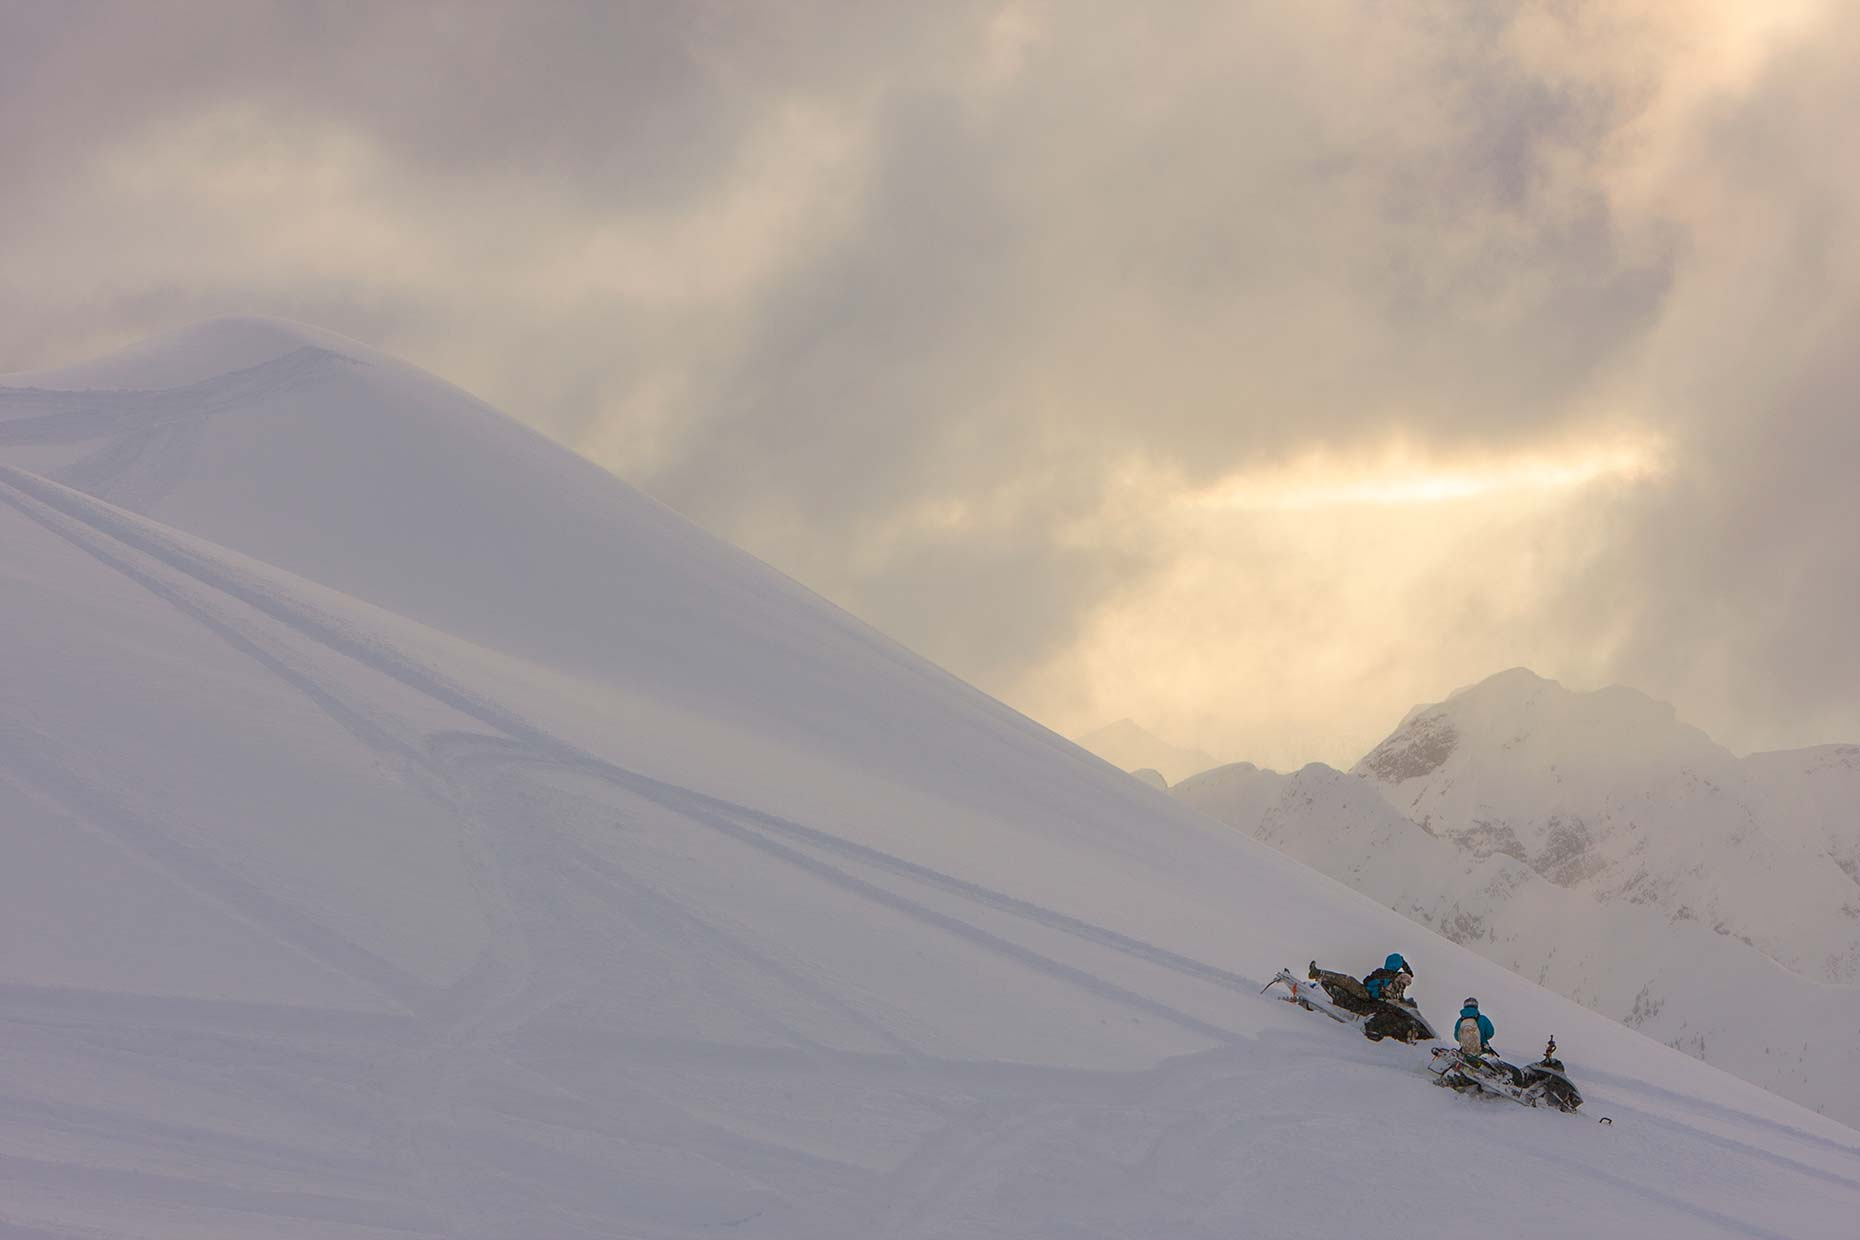 Ian-Coble-Sledding-Sunset-Mountains-BC-Canada-Snowmobiles